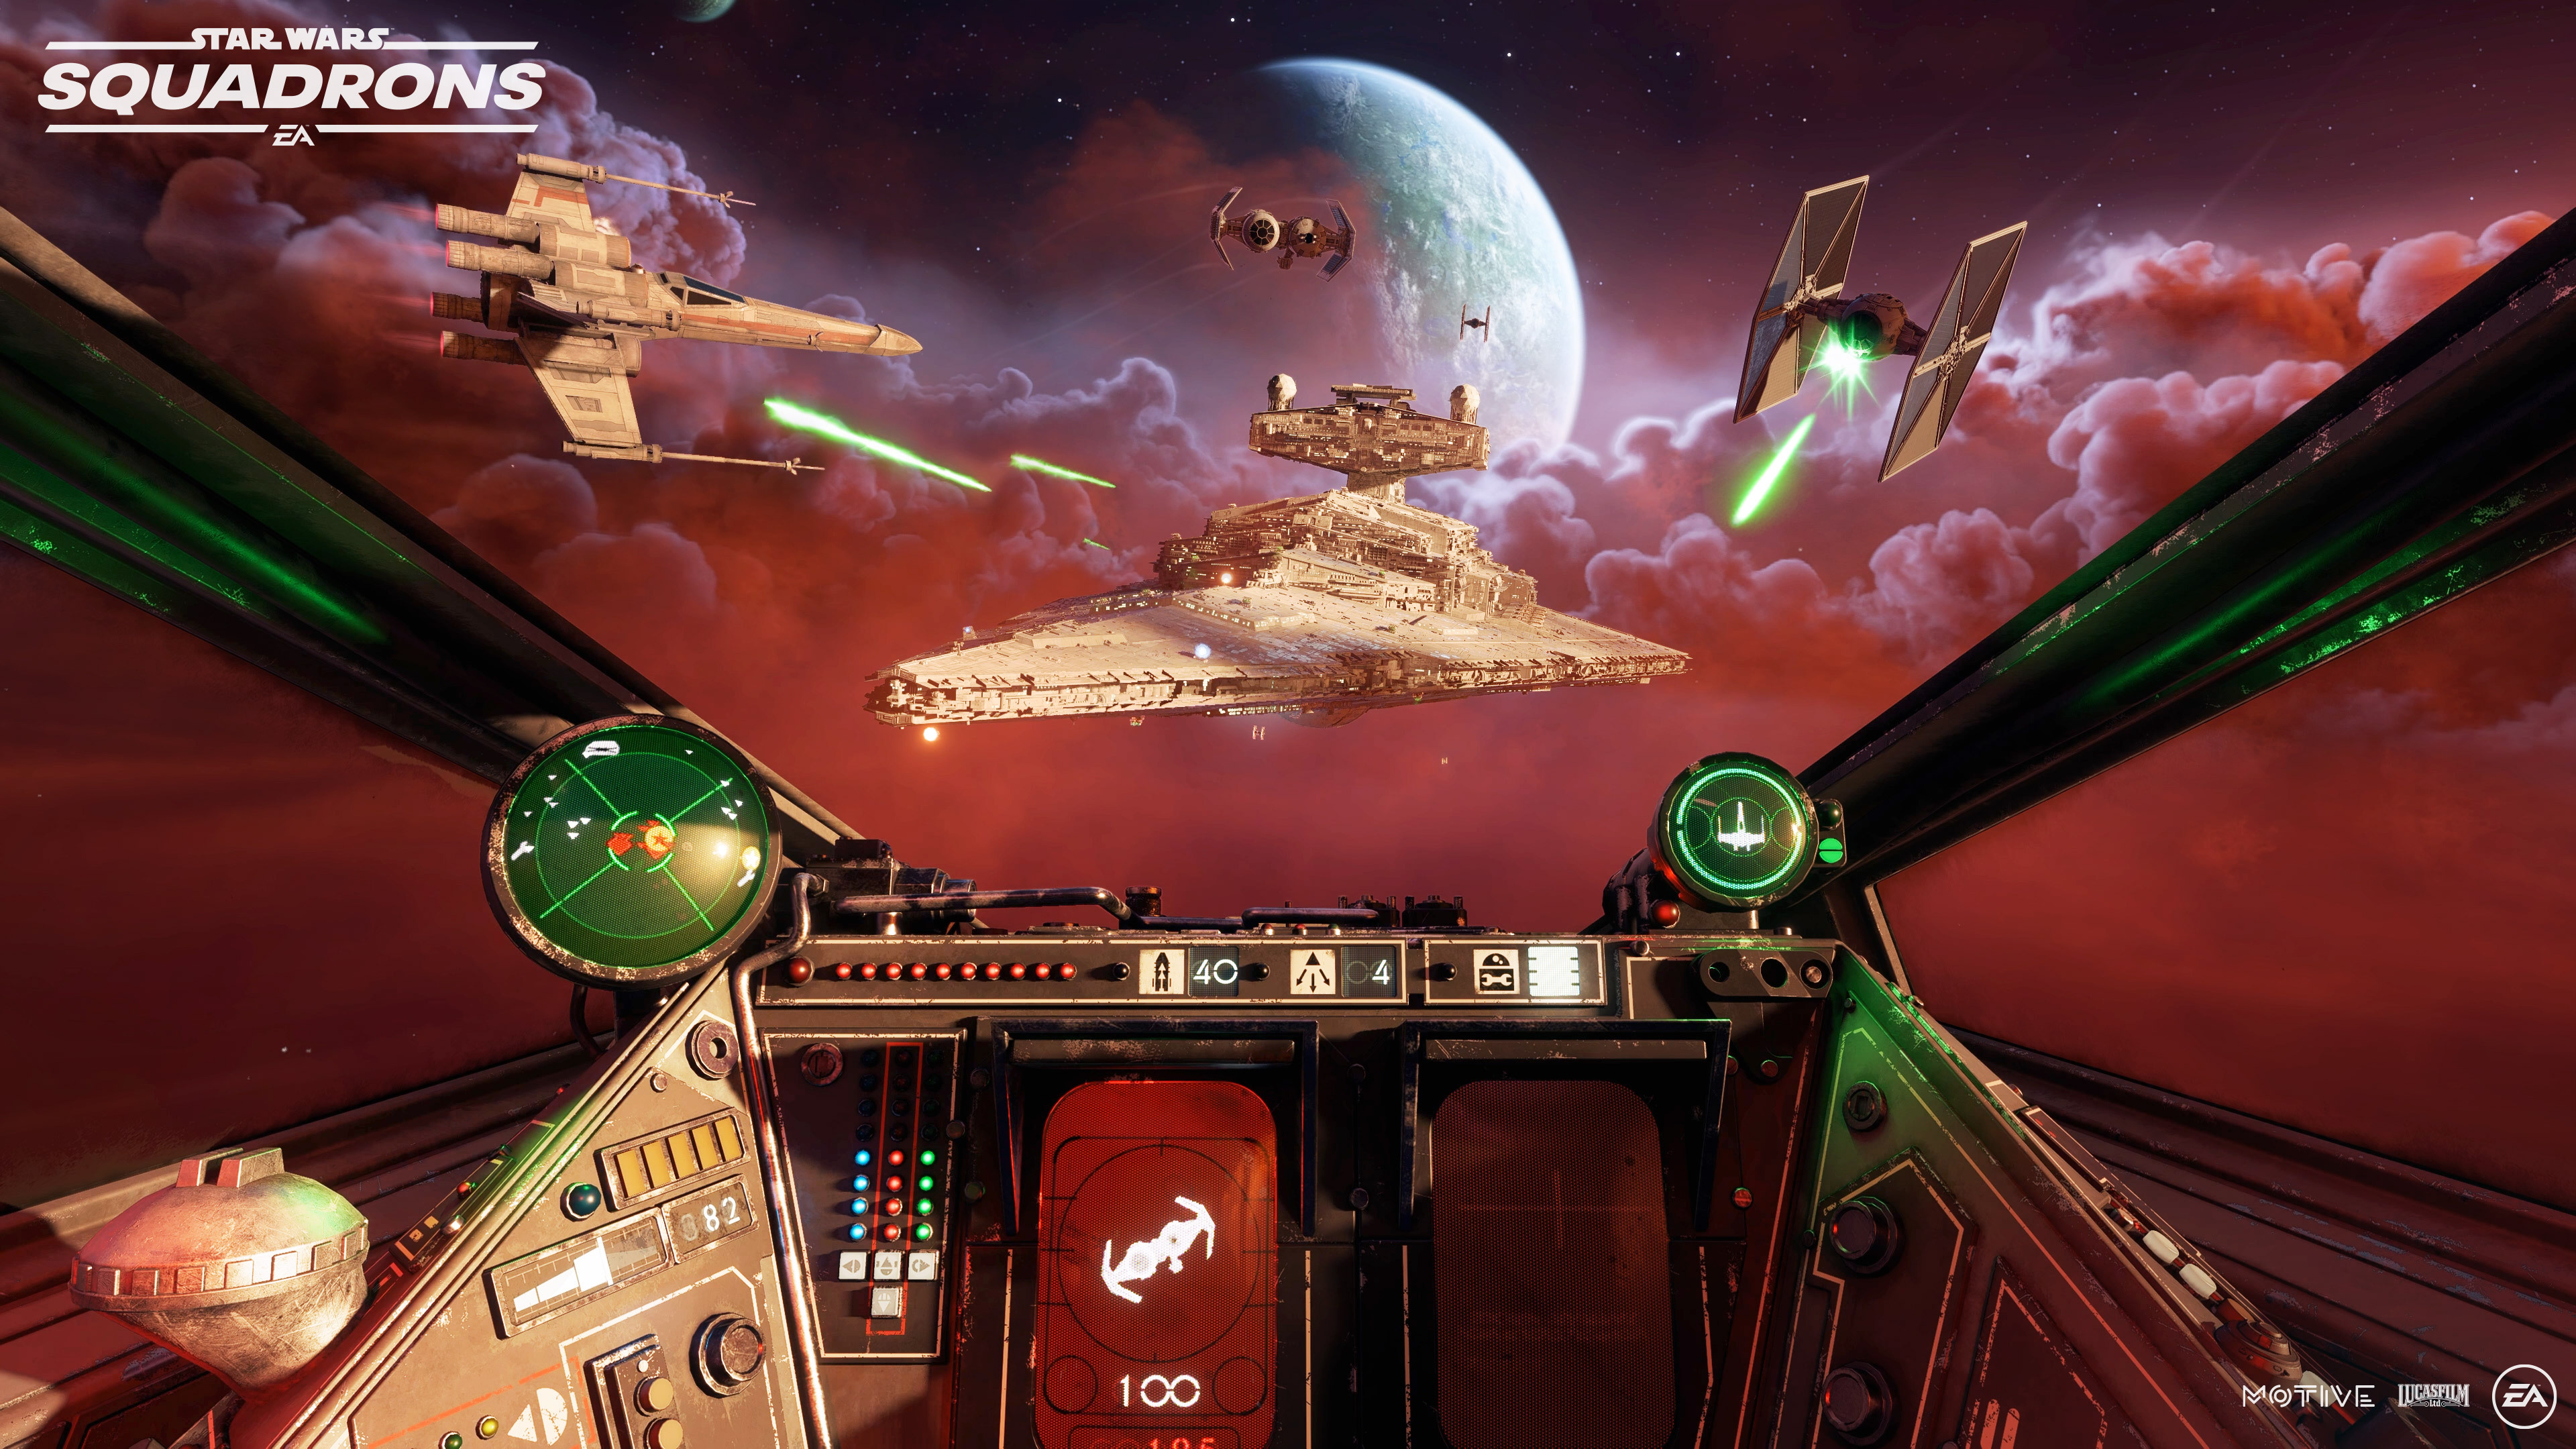 star wars squadrons video game